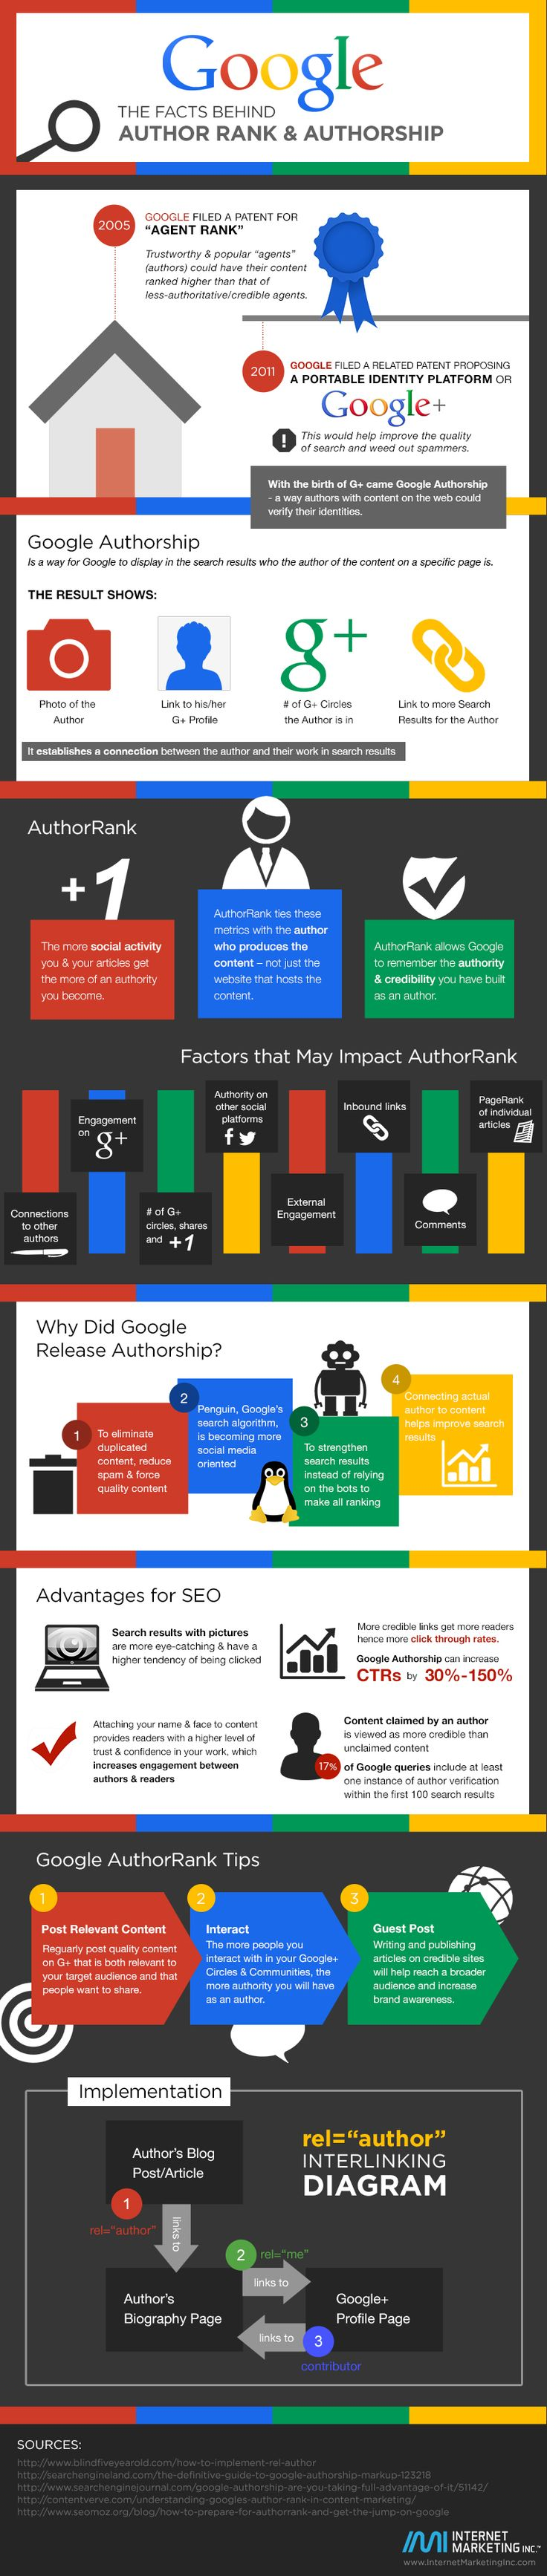 Infographic: Everything you need to know about Google Authorship via @Melissa Forbes http://www.forbes.com/sites/brentgleeson/2013/09/30/everything-you-need-to-know-about-google-authorship